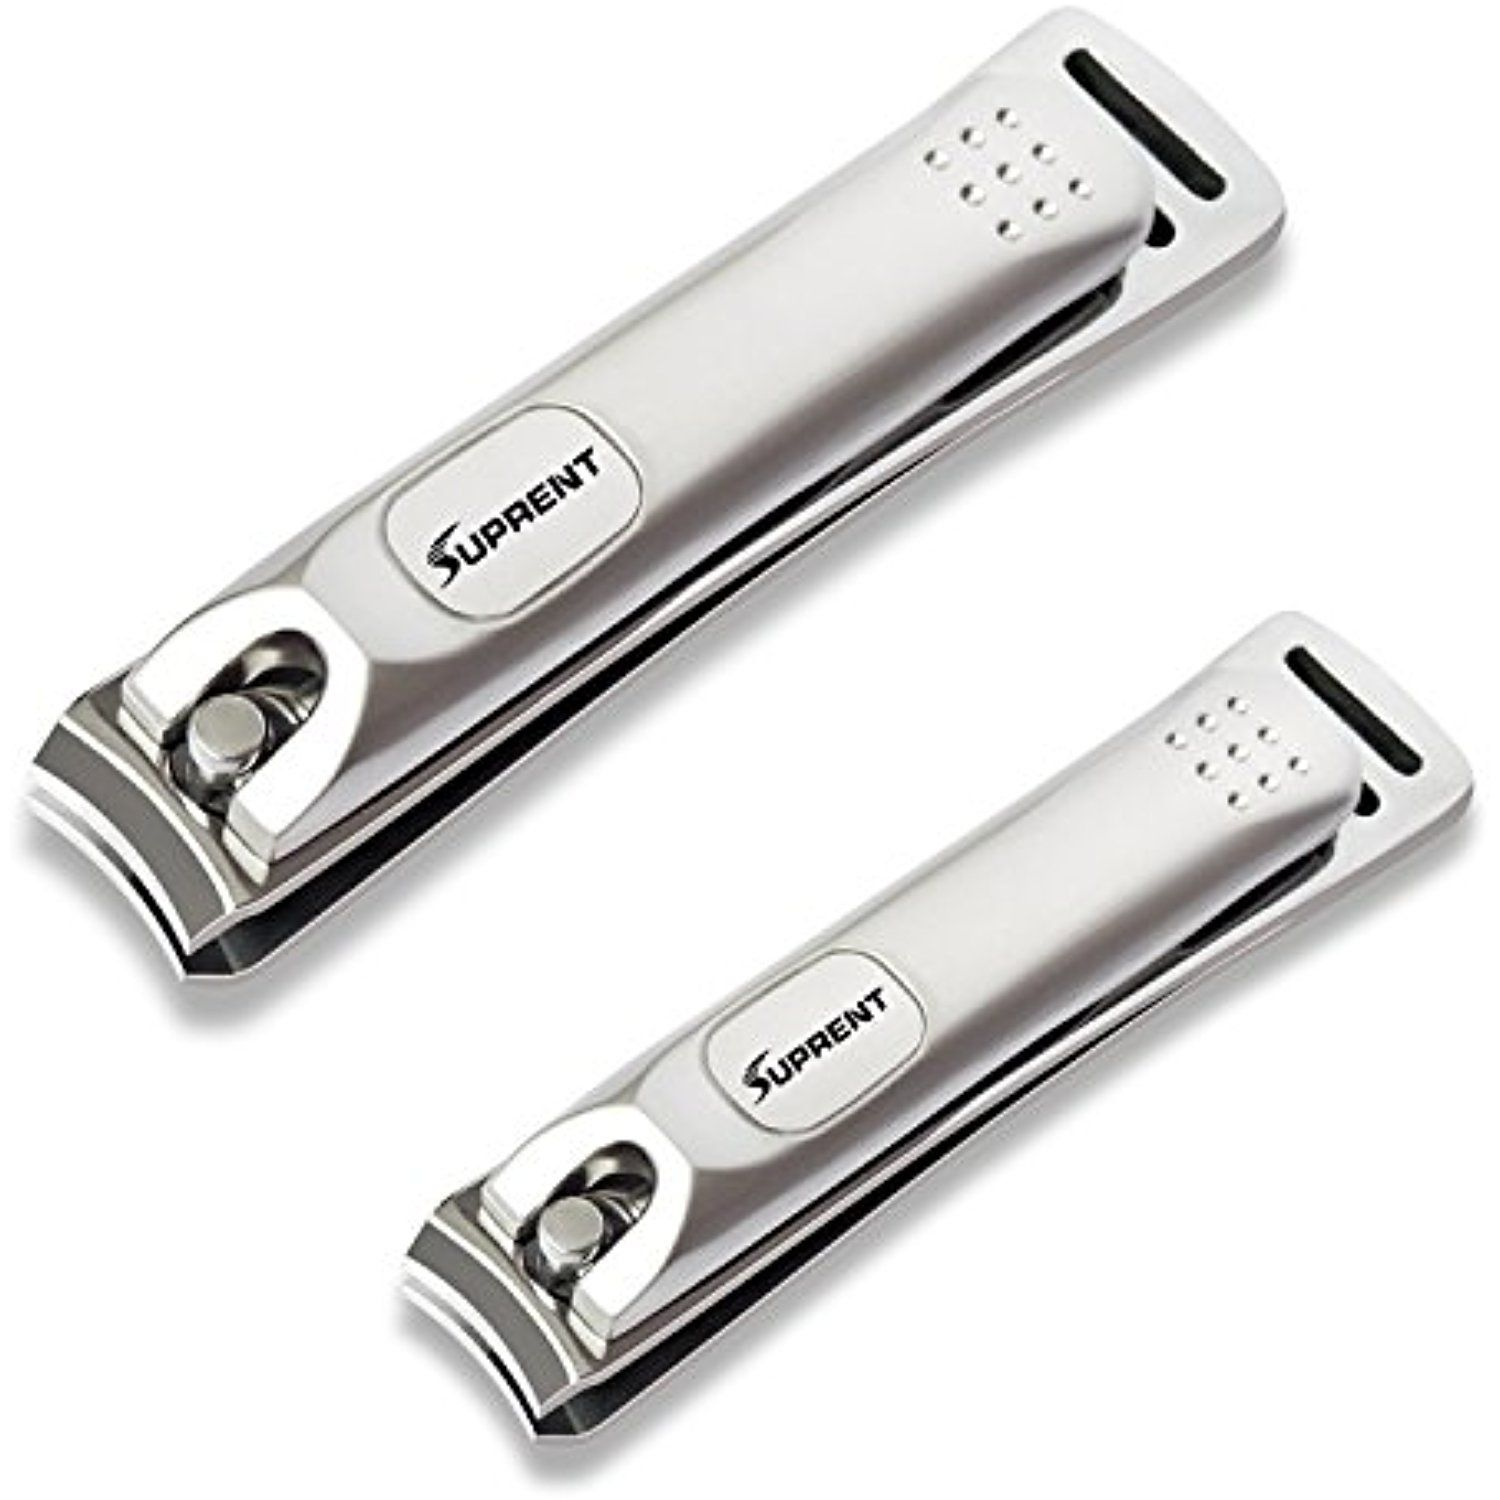 SUPRENT Fingernail and Toenail Clippers Set for Men and Women ...